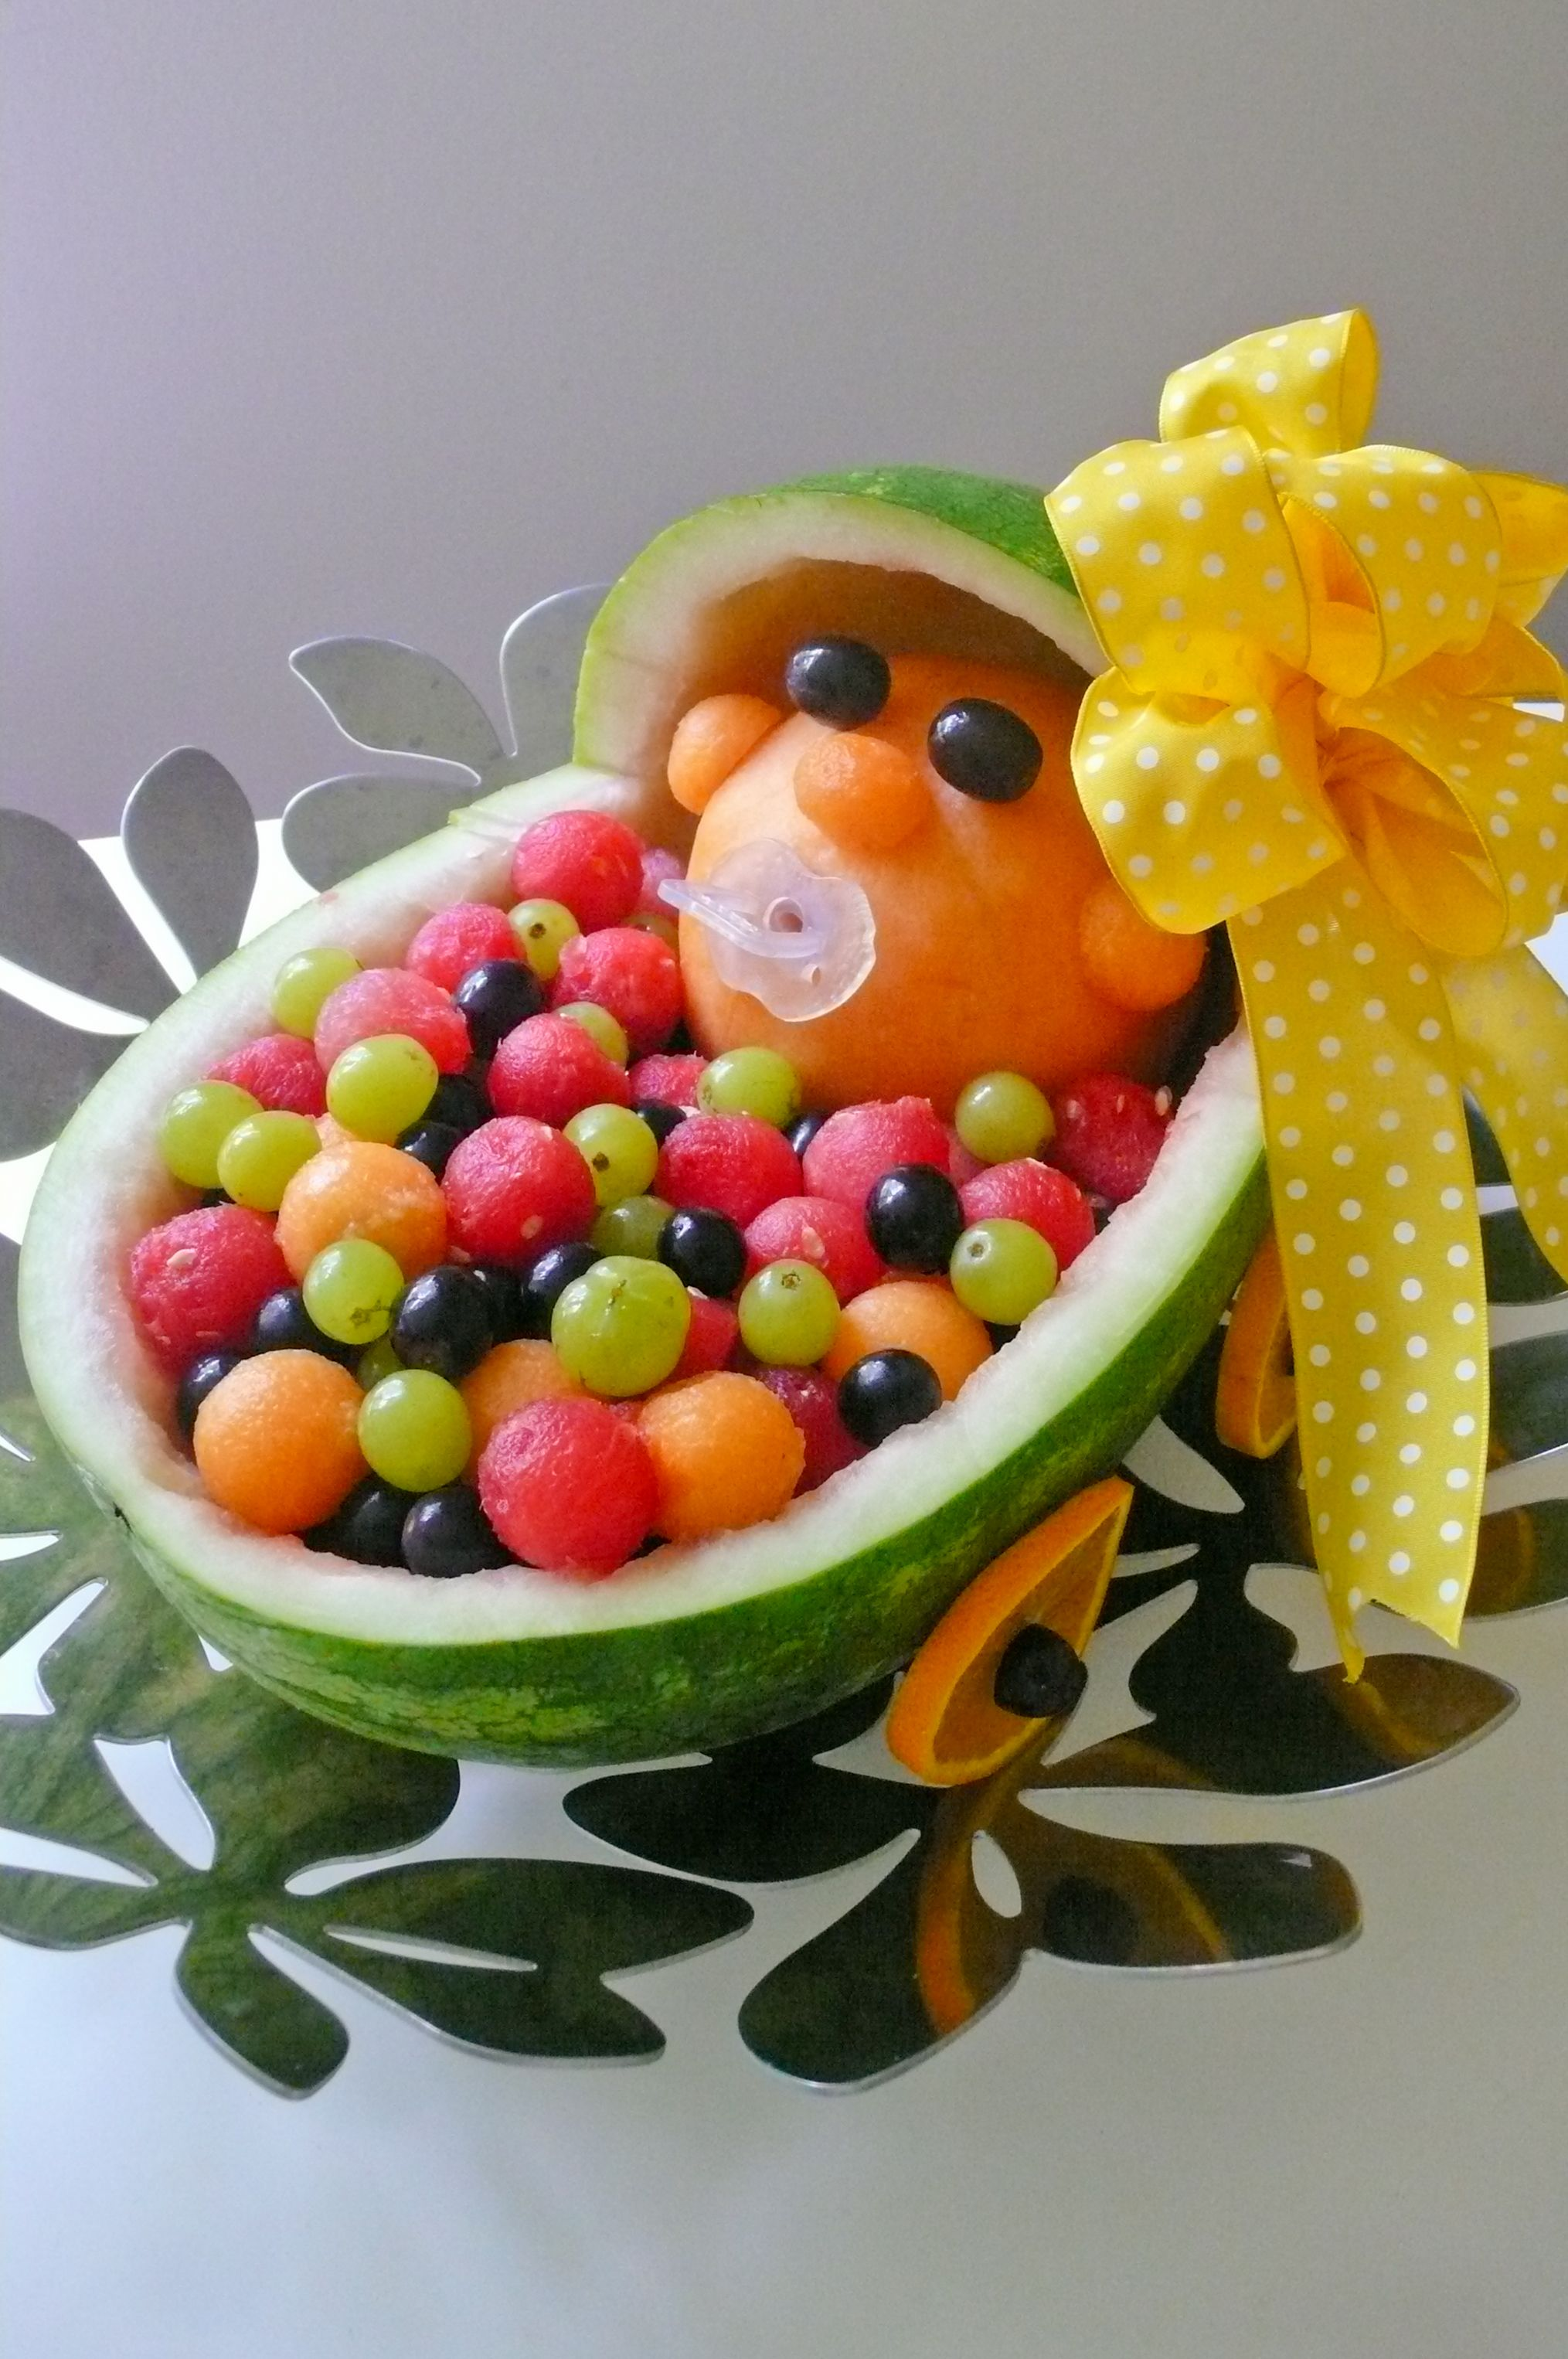 shower fruit shower baby baby showers unisex baby shower fruit trays